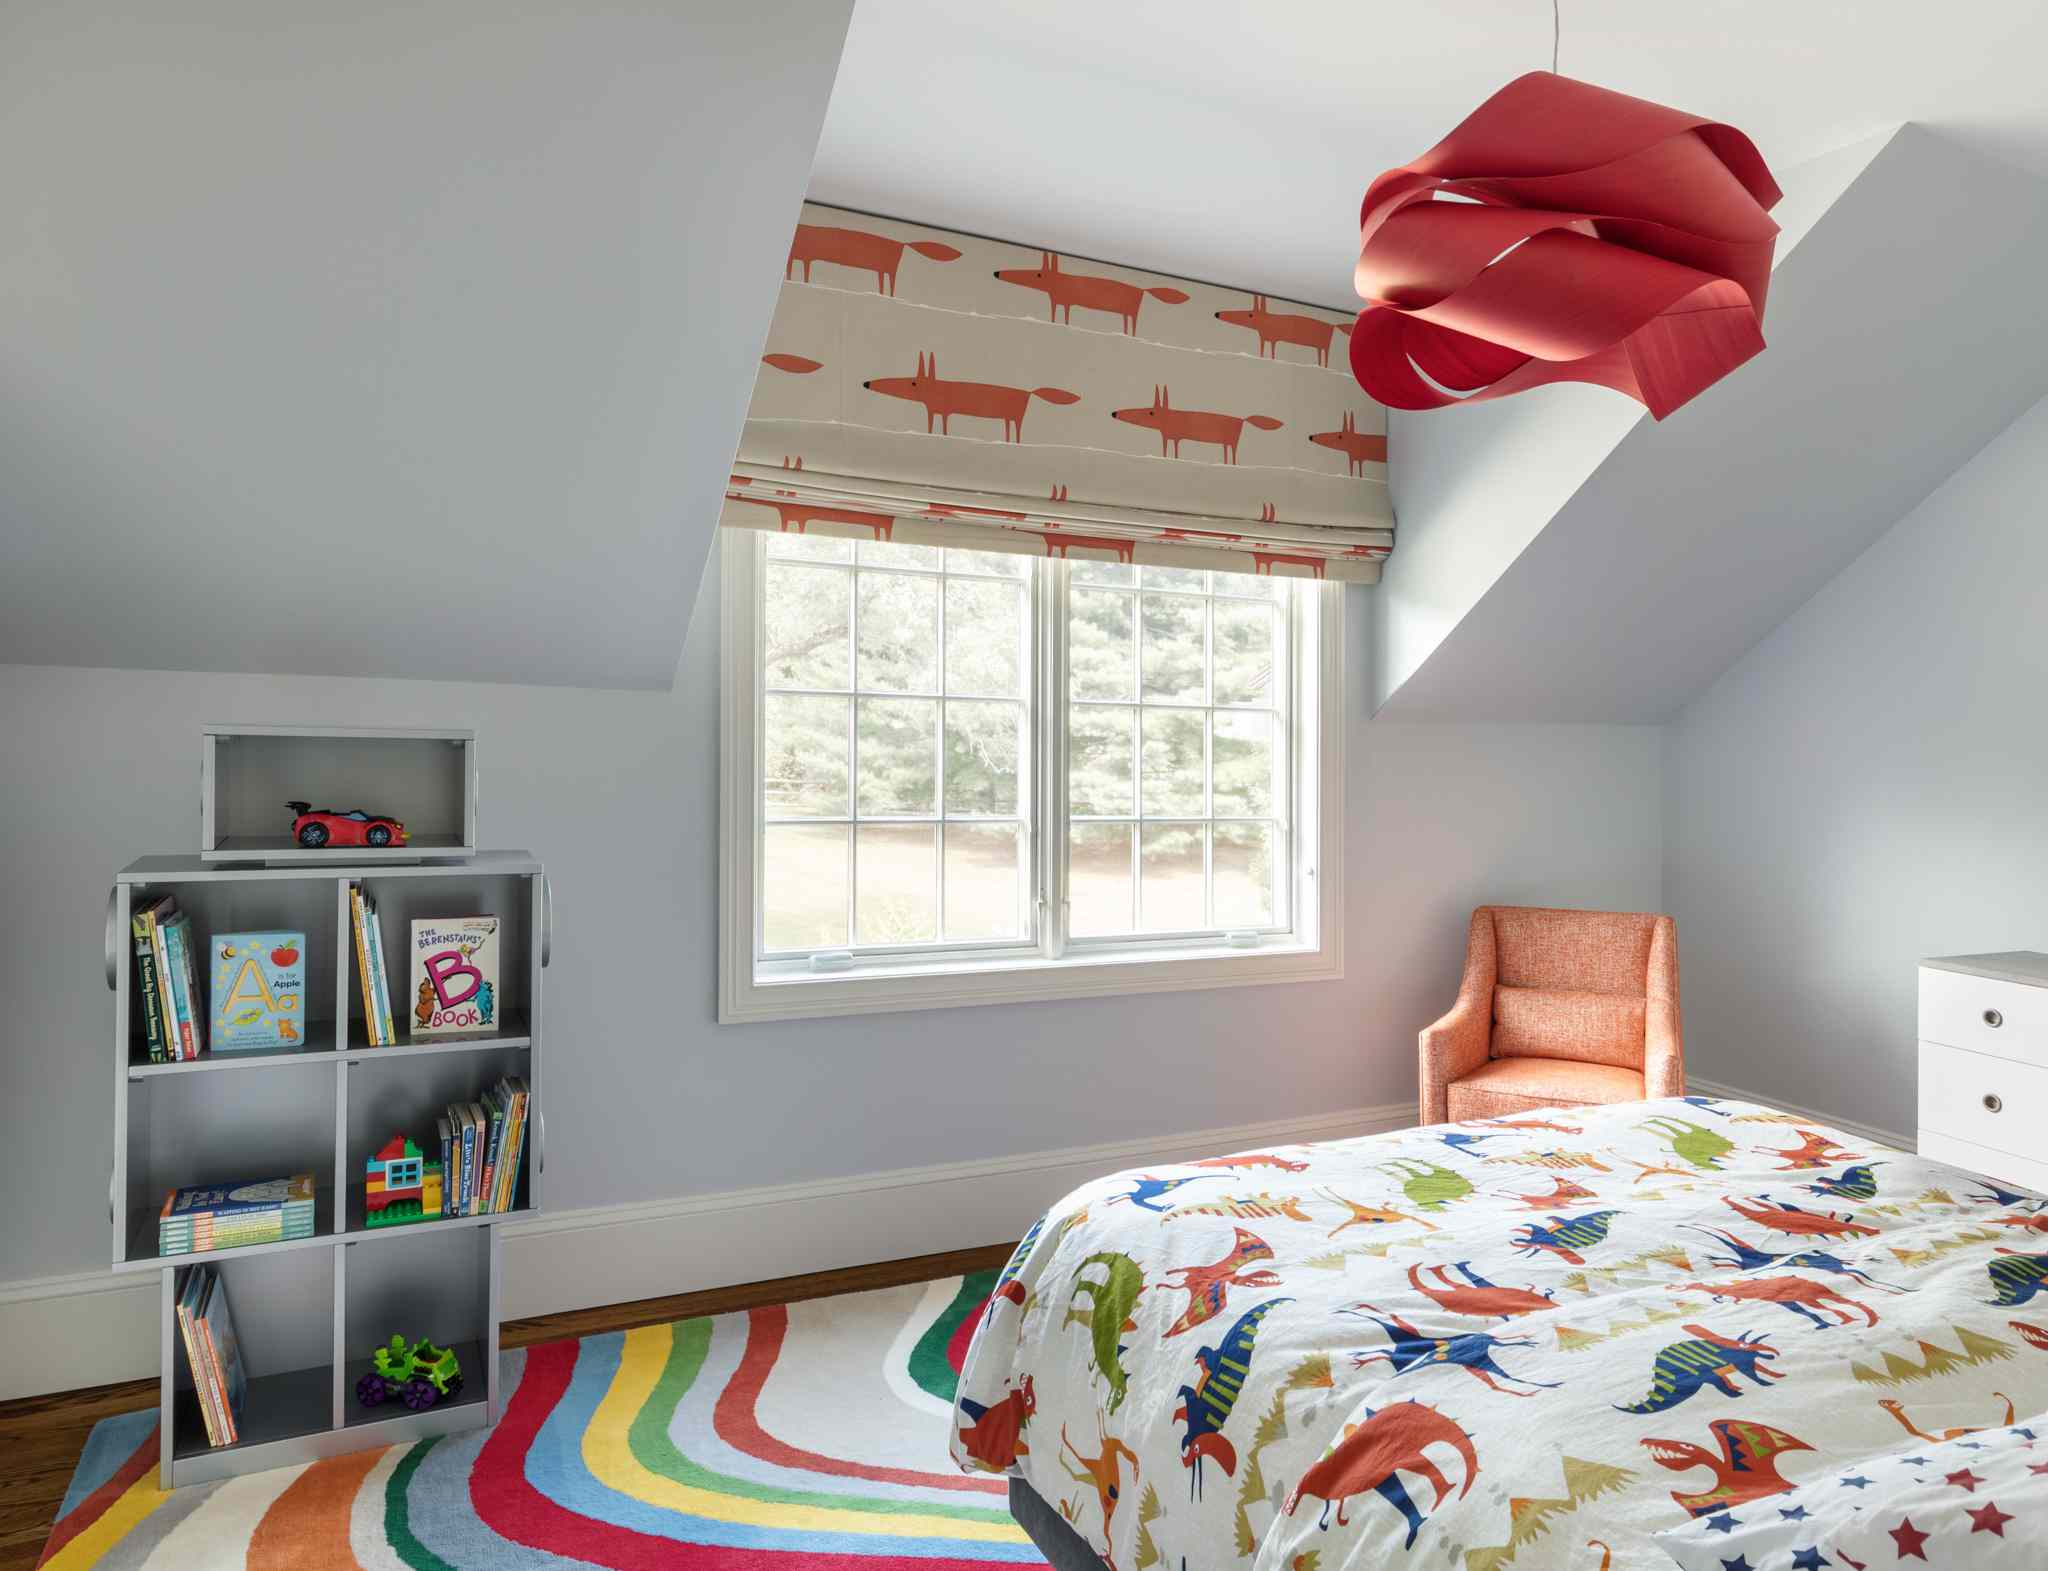 After shot of bright and colorful boys bedroom.